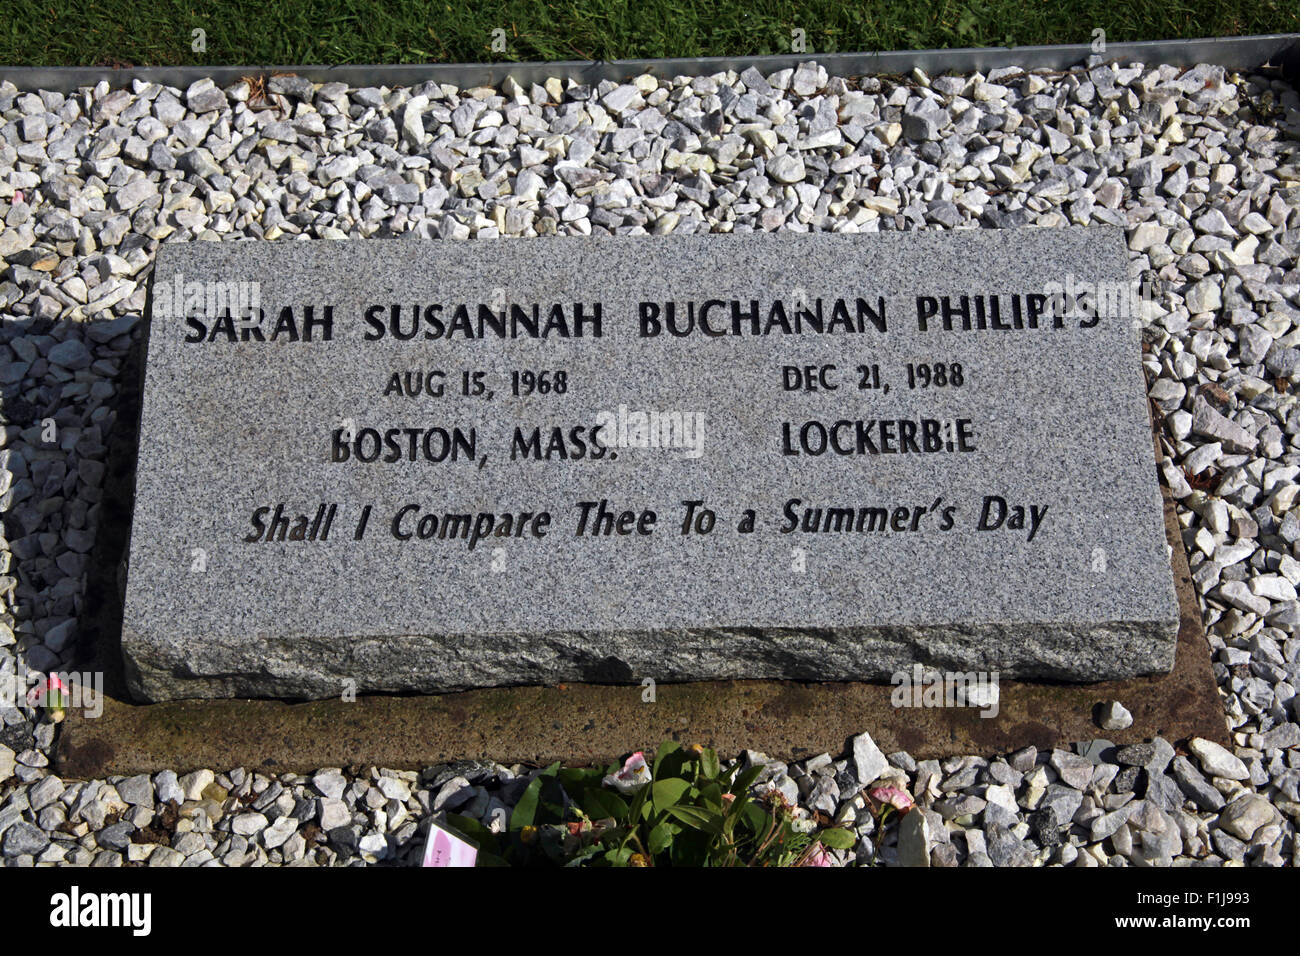 philips,Lodge,Visitors,Centre,DLVC,Trust,Lockerbie,Memorial,Remembrance,Scotland,Victims,Pan,Am,PanAm,flight,103,bomb,bombing,terrorist,December,1988,attack,crash,dead,site,21/12/1988,270,victims,Scottish,Town,conspiracy,blast,Tundergarth,Room,garden,of,Dryfesdale,Cemetery,news,Cultural,New York,GoTonySmith,Lodge,Visitors,Centre,DLVC,Trust,Lockerbie,Memorial,Scotland,Victims,Pan,Am,PanAm,flight,103,bomb,bombing,terrorist,December,1988,attack,crash,dead,site,21/12/1988,270,victims,Scottish,Town,conspiracy,blast,Tundergarth,Room,garden,of,Dryfesdale,Cemetery,news,Cultural,understanding,remembering,innocent,transatlantic,Frankfurt,Detroit,Libyan,Libya,Colonel Muammar Gaddafi,civil,case,compensation,terrorism,PA103,30,30years,years,Syracuse,University,SU,family,collections,Story,Archive,Archives,40,35,Timeline,saga,disaster,air,Scholars,program,programs,remembrance,Clipper Maid of the Seas,N739PA,Boeing,727,plane,aircraft,Scotland,UK,United Kingdom,GB,Great Britain,resting,place,Buy Pictures of,Buy Images Of,New York,al megrahi,30 Years